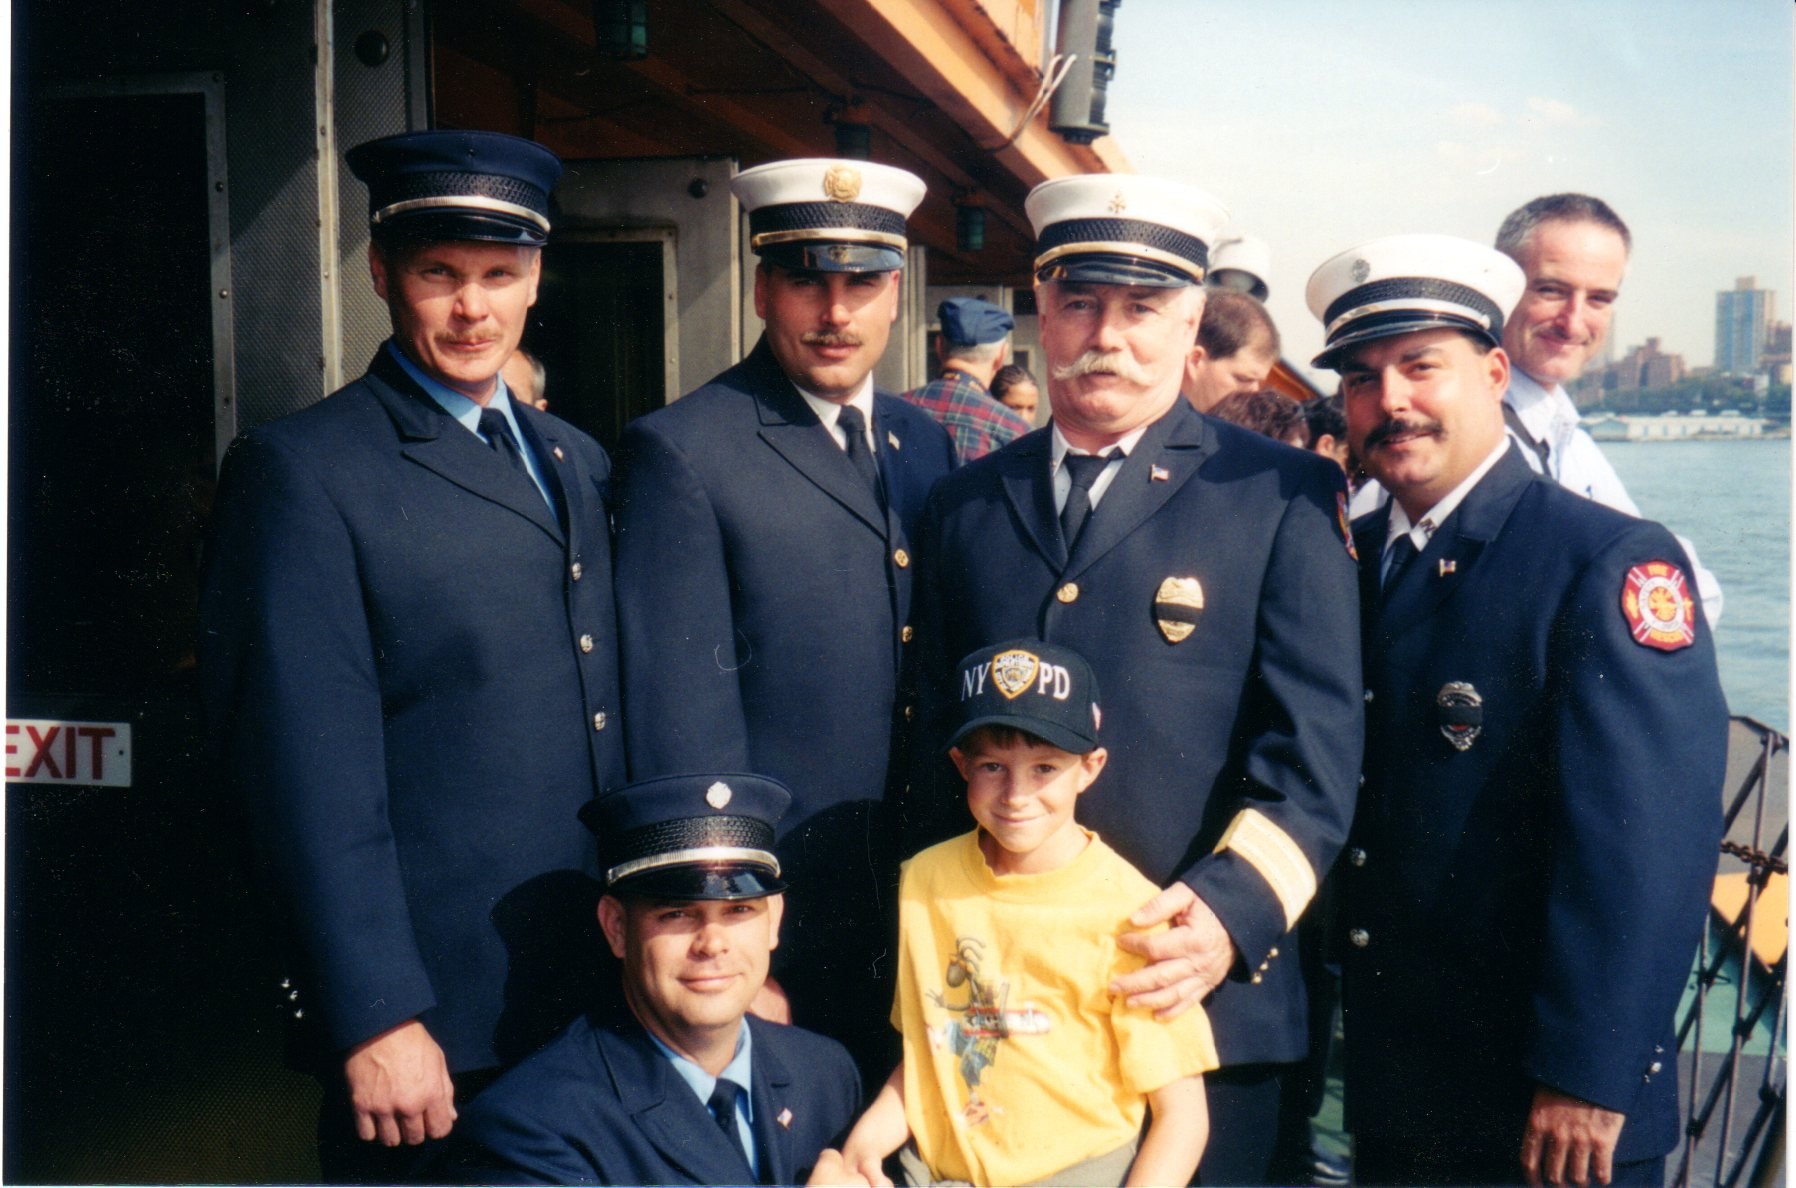 Kyle and the 9/11 Firefighters